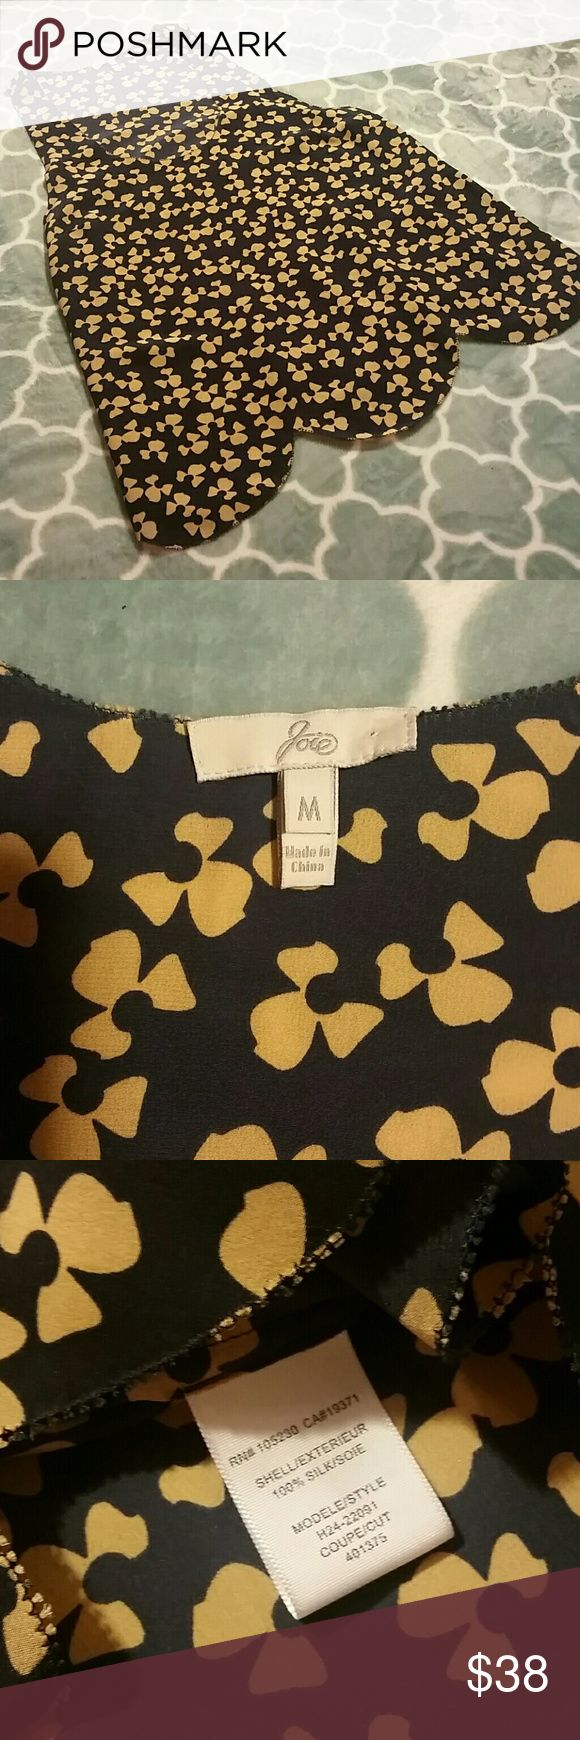 """Joie Hana Half Flower Scalloped Silk Tank Size M Joie Hana Half Flower Silk Tank Top. Women's Size M. Navy Blue/Tan. A wavy hem finishes a flowy silk tank peppered with floral silhouettes and finished with jagged pinking at all edges.   EUC.  Approx. length from shoulder: 25 1/2"""" Joie Tops Tank Tops"""